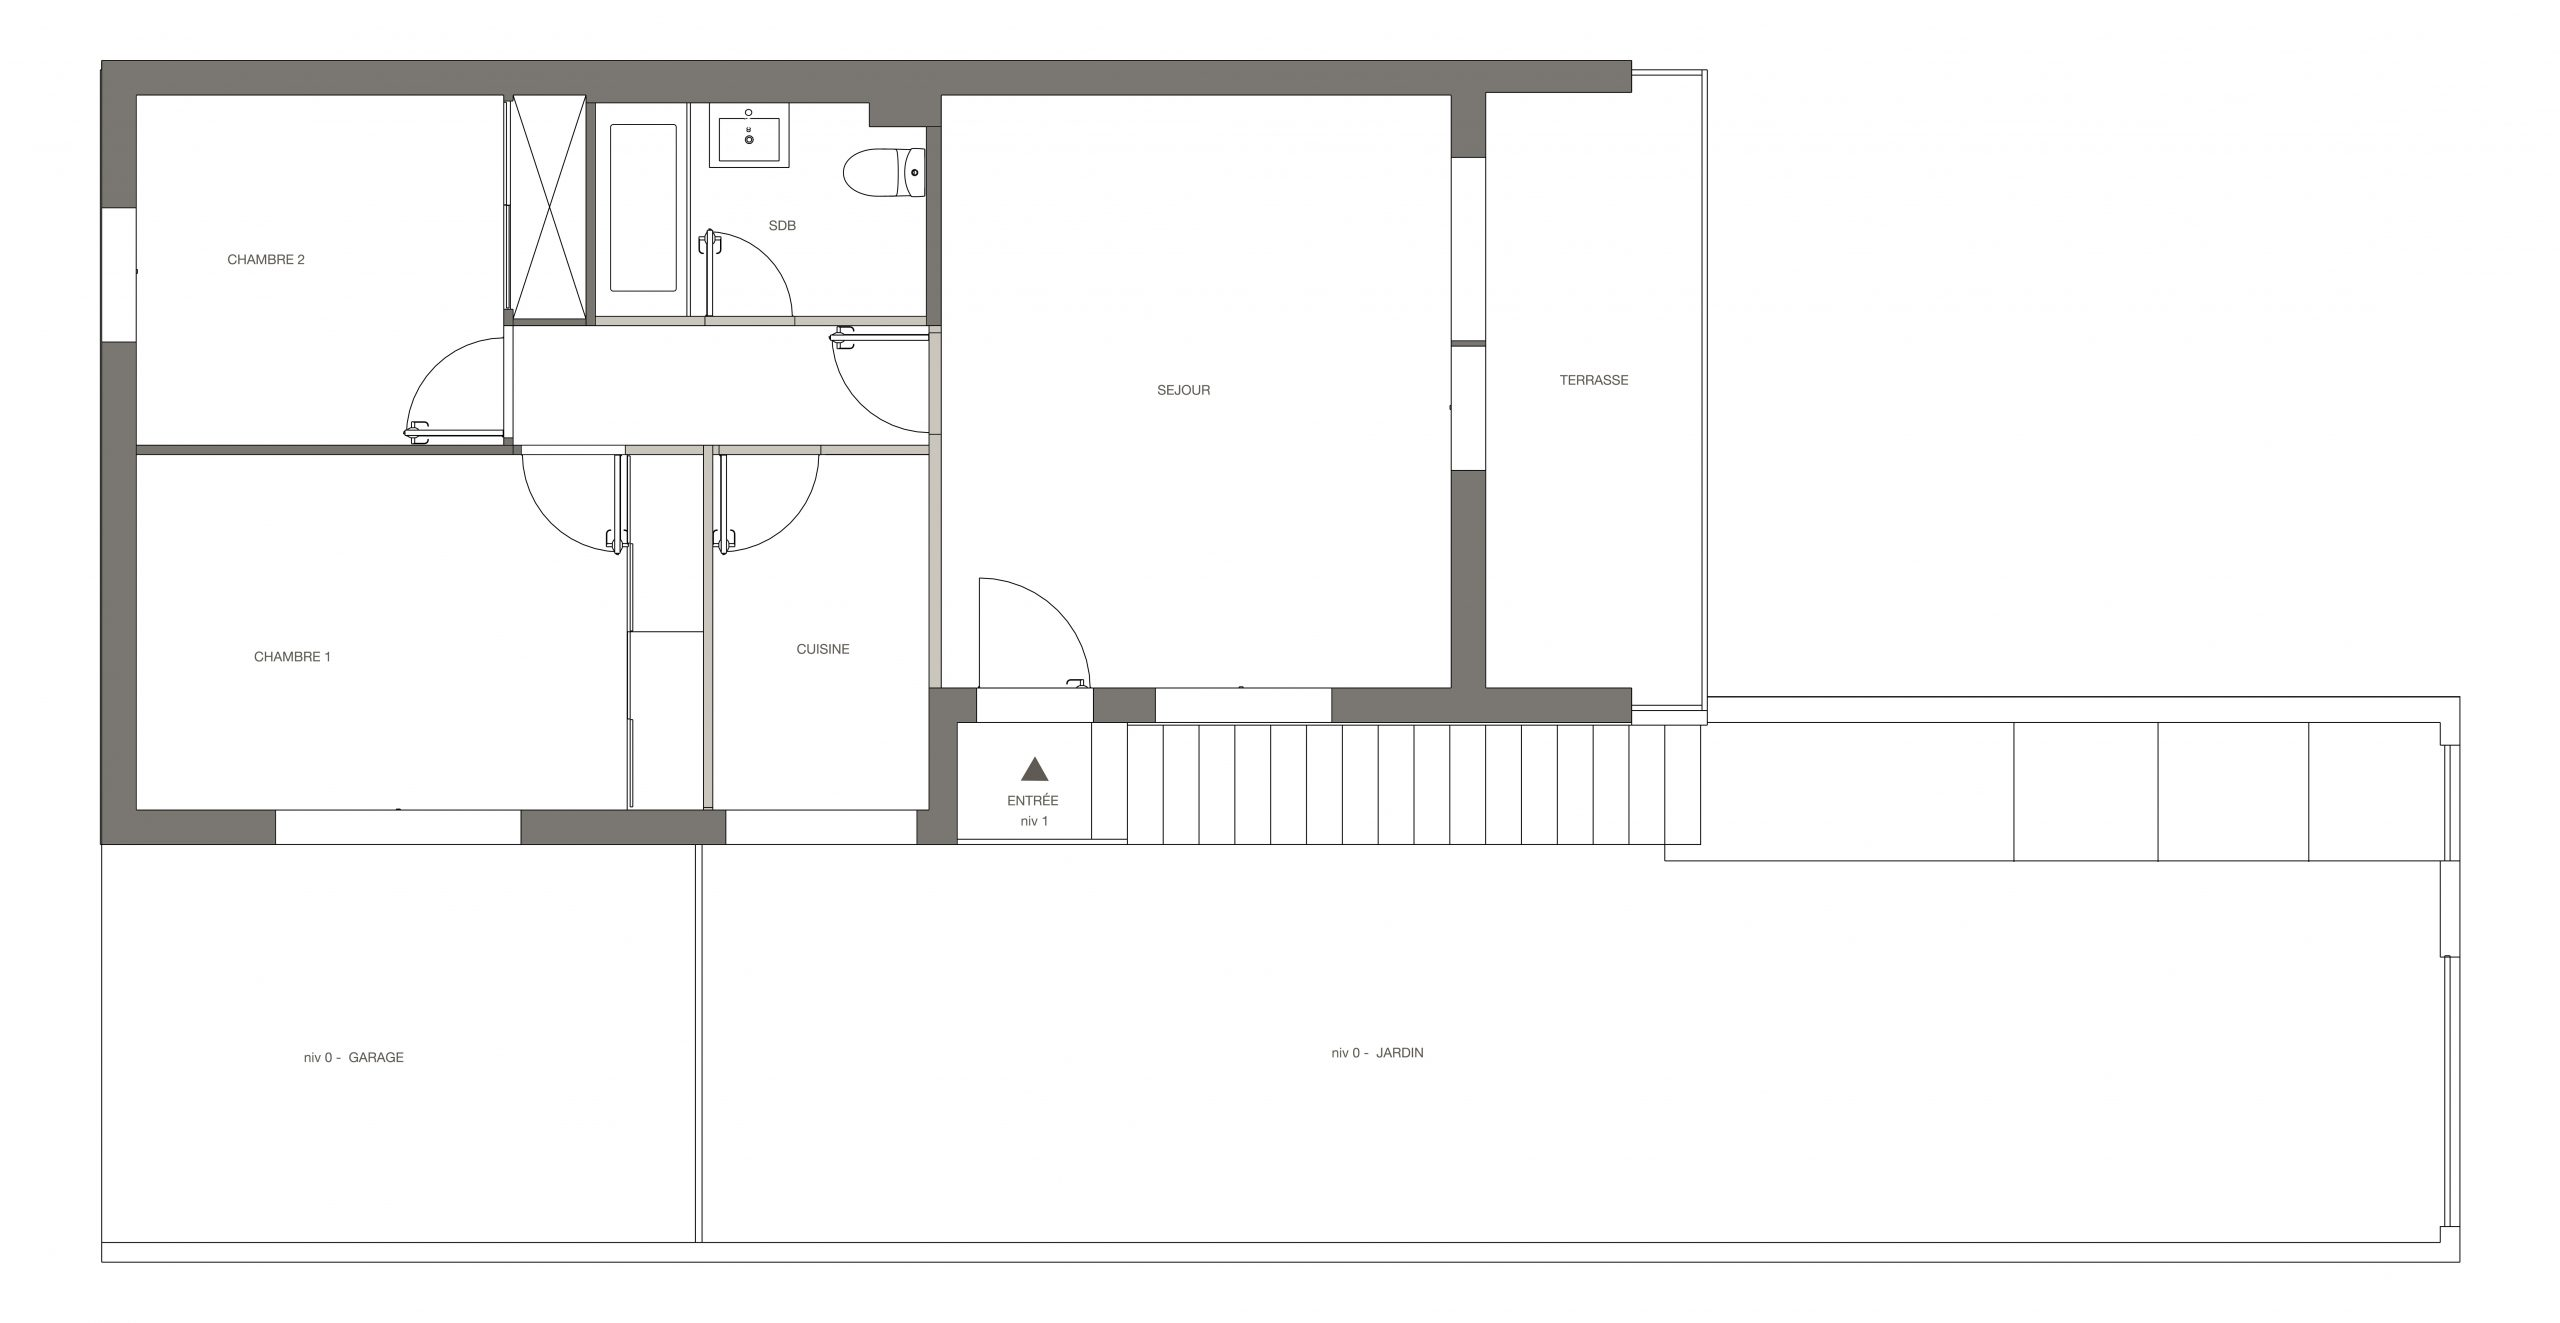 plan de l'appartement avant rénovation